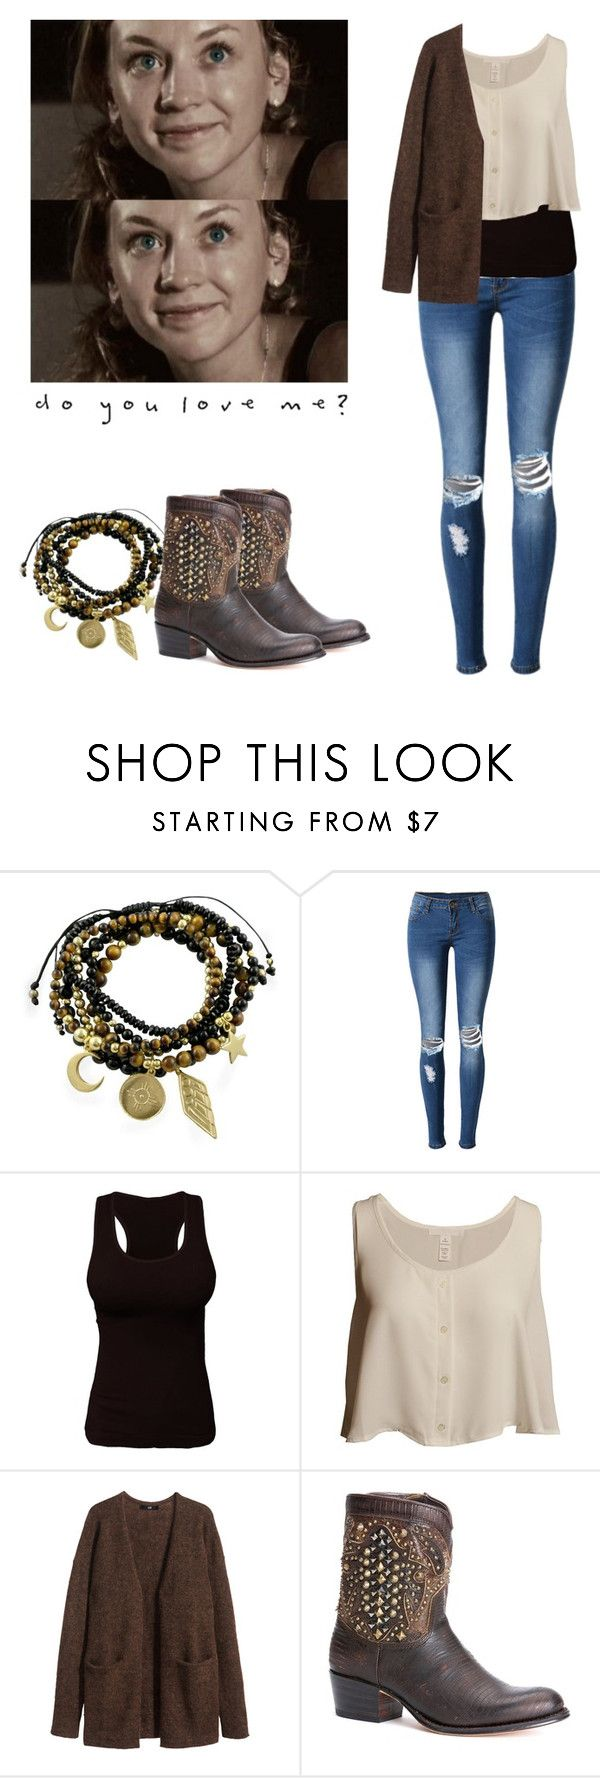 """Beth Greene outfit for chilly weather - twd / the walkig dead"" by shadyannon ❤ liked on Polyvore featuring Essentia By Love Lily Rose, WithChic, H&M and Frye"